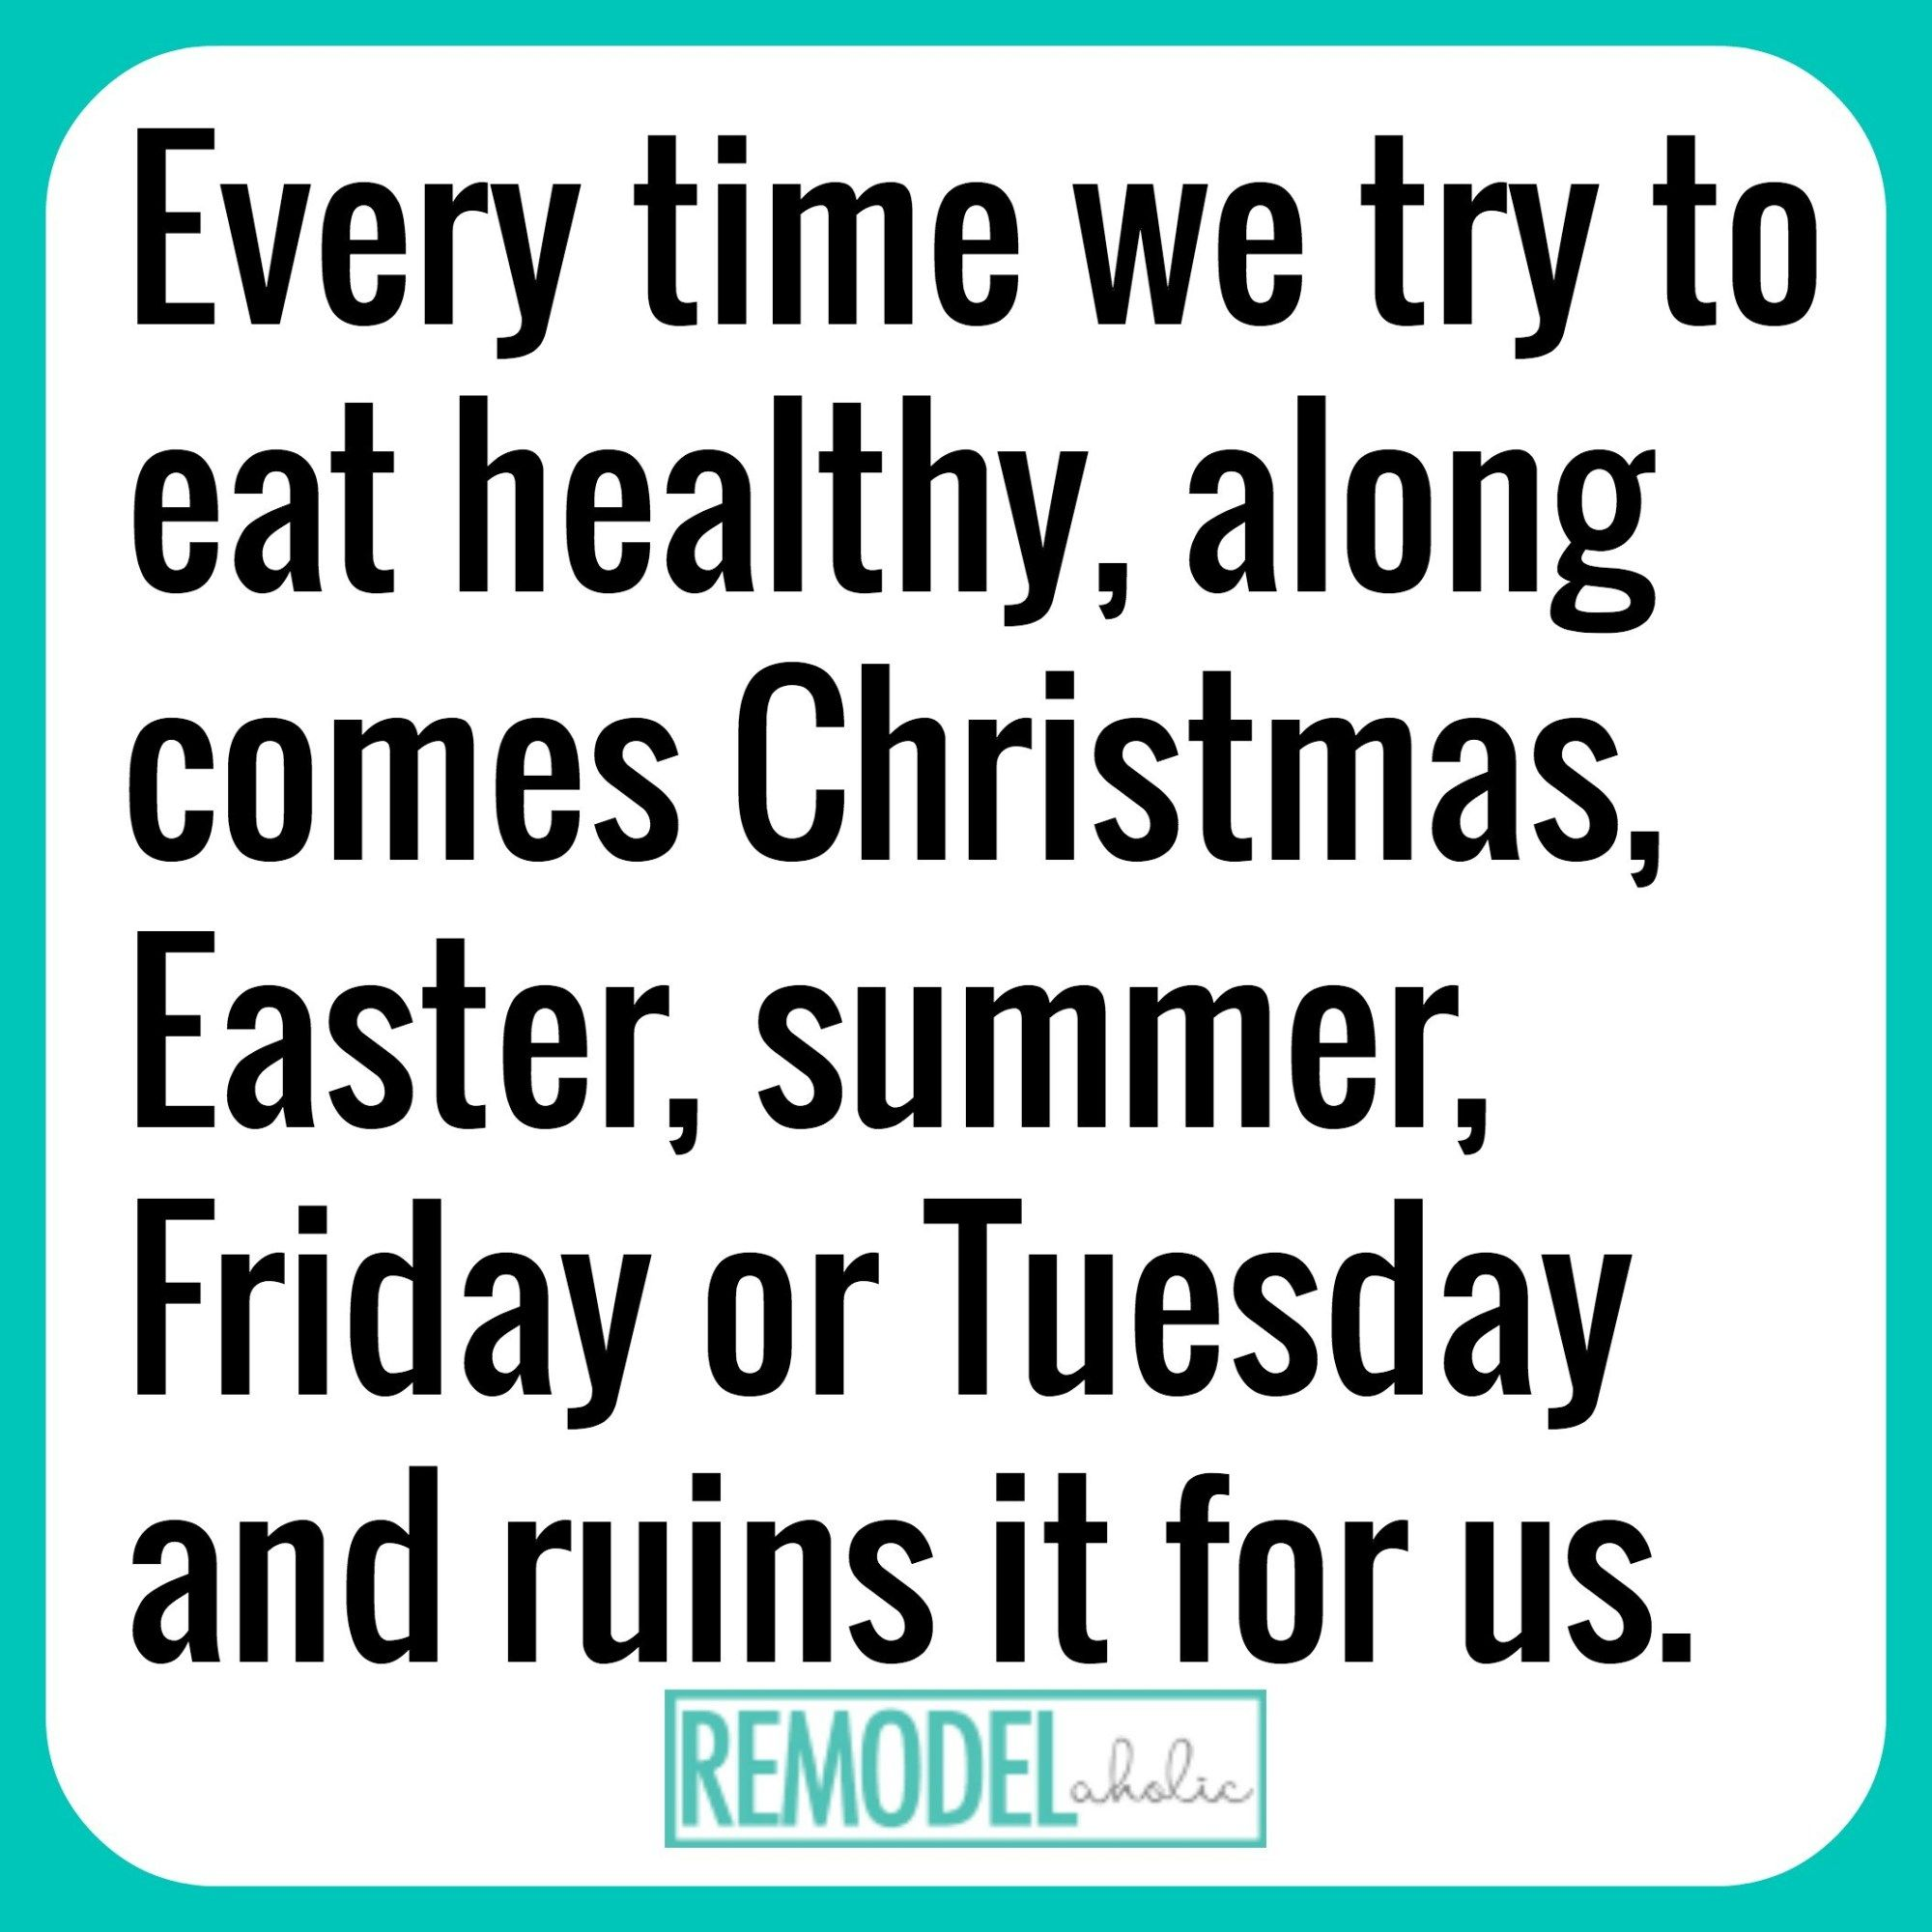 Every Time We Try To Eat Healthy Along Comes A Tuesday To Ruin It Meme Remodelaholic Com Funnymeme Eatinghealthy Silly Quotes Funny Quotes Quotes